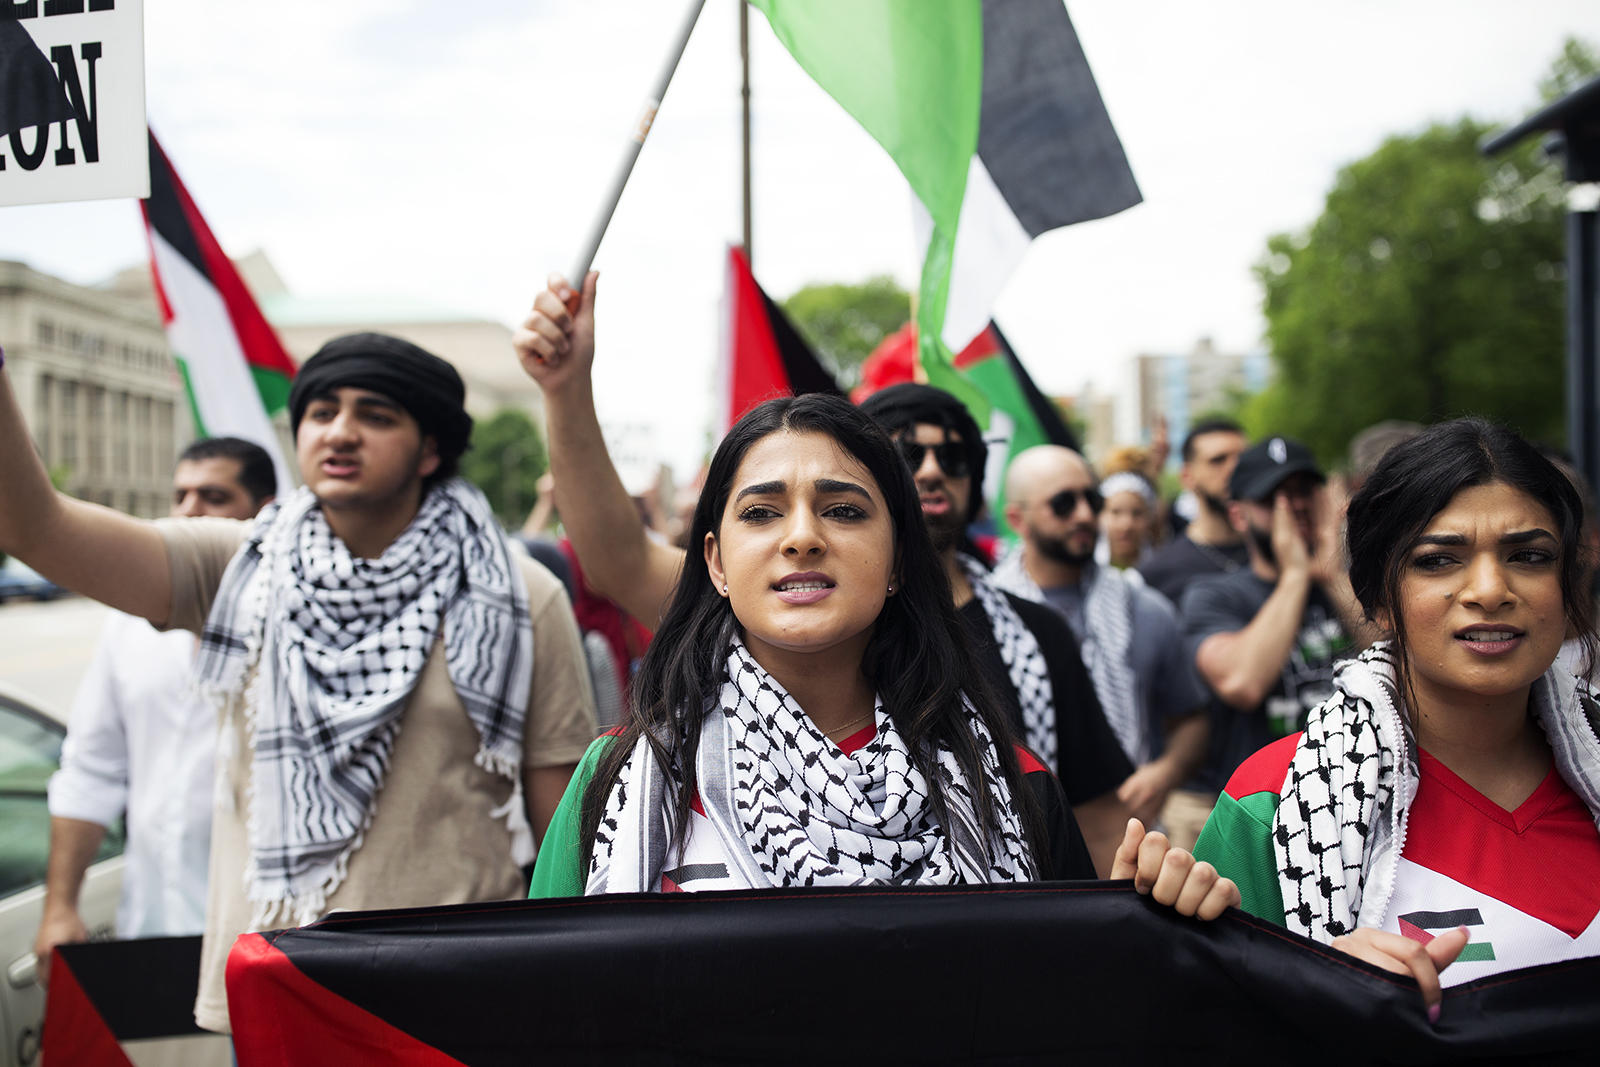 Opinion: They're Palestinians, not 'Israeli Arabs'